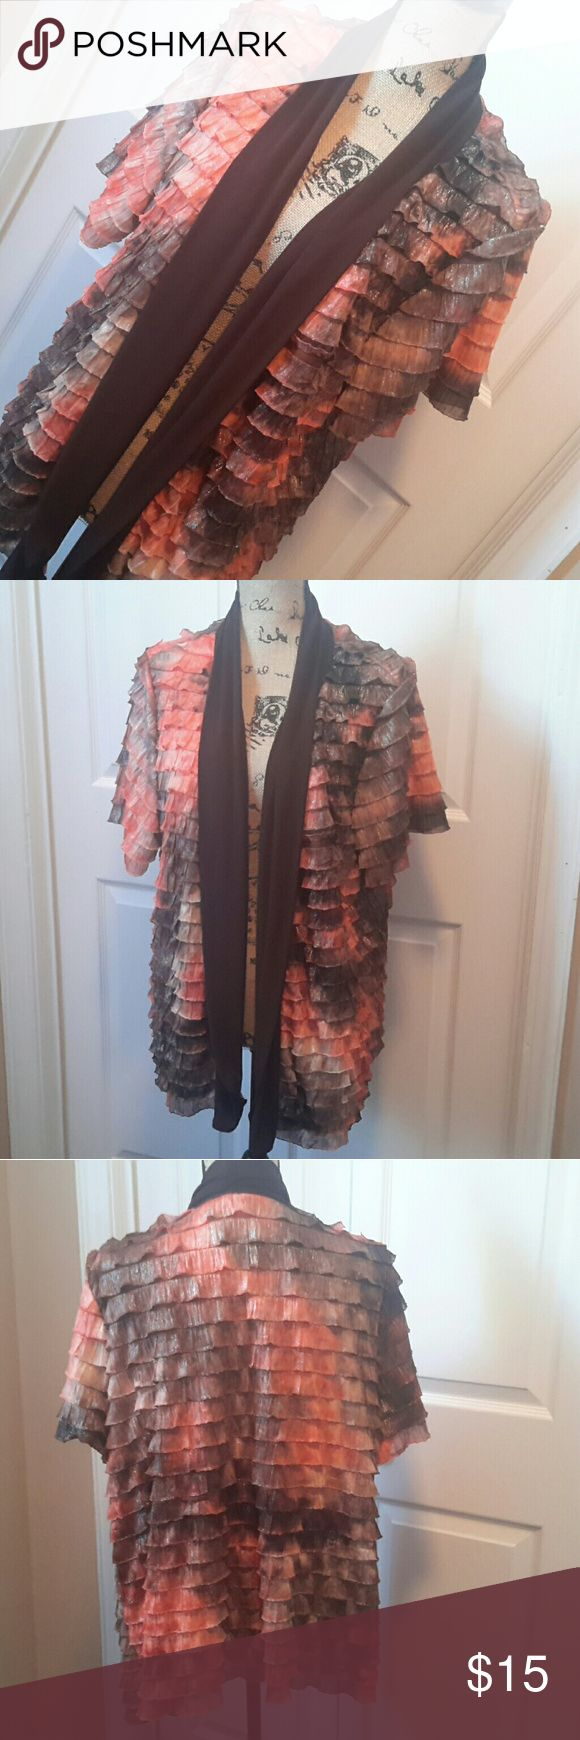 New Directions Ruffled Dressy Jacket Shimmering orange & brown ruffled topper jacket. Wear over a cami or solid color top. Normal wash wear Measurements in photos new directions Jackets & Coats